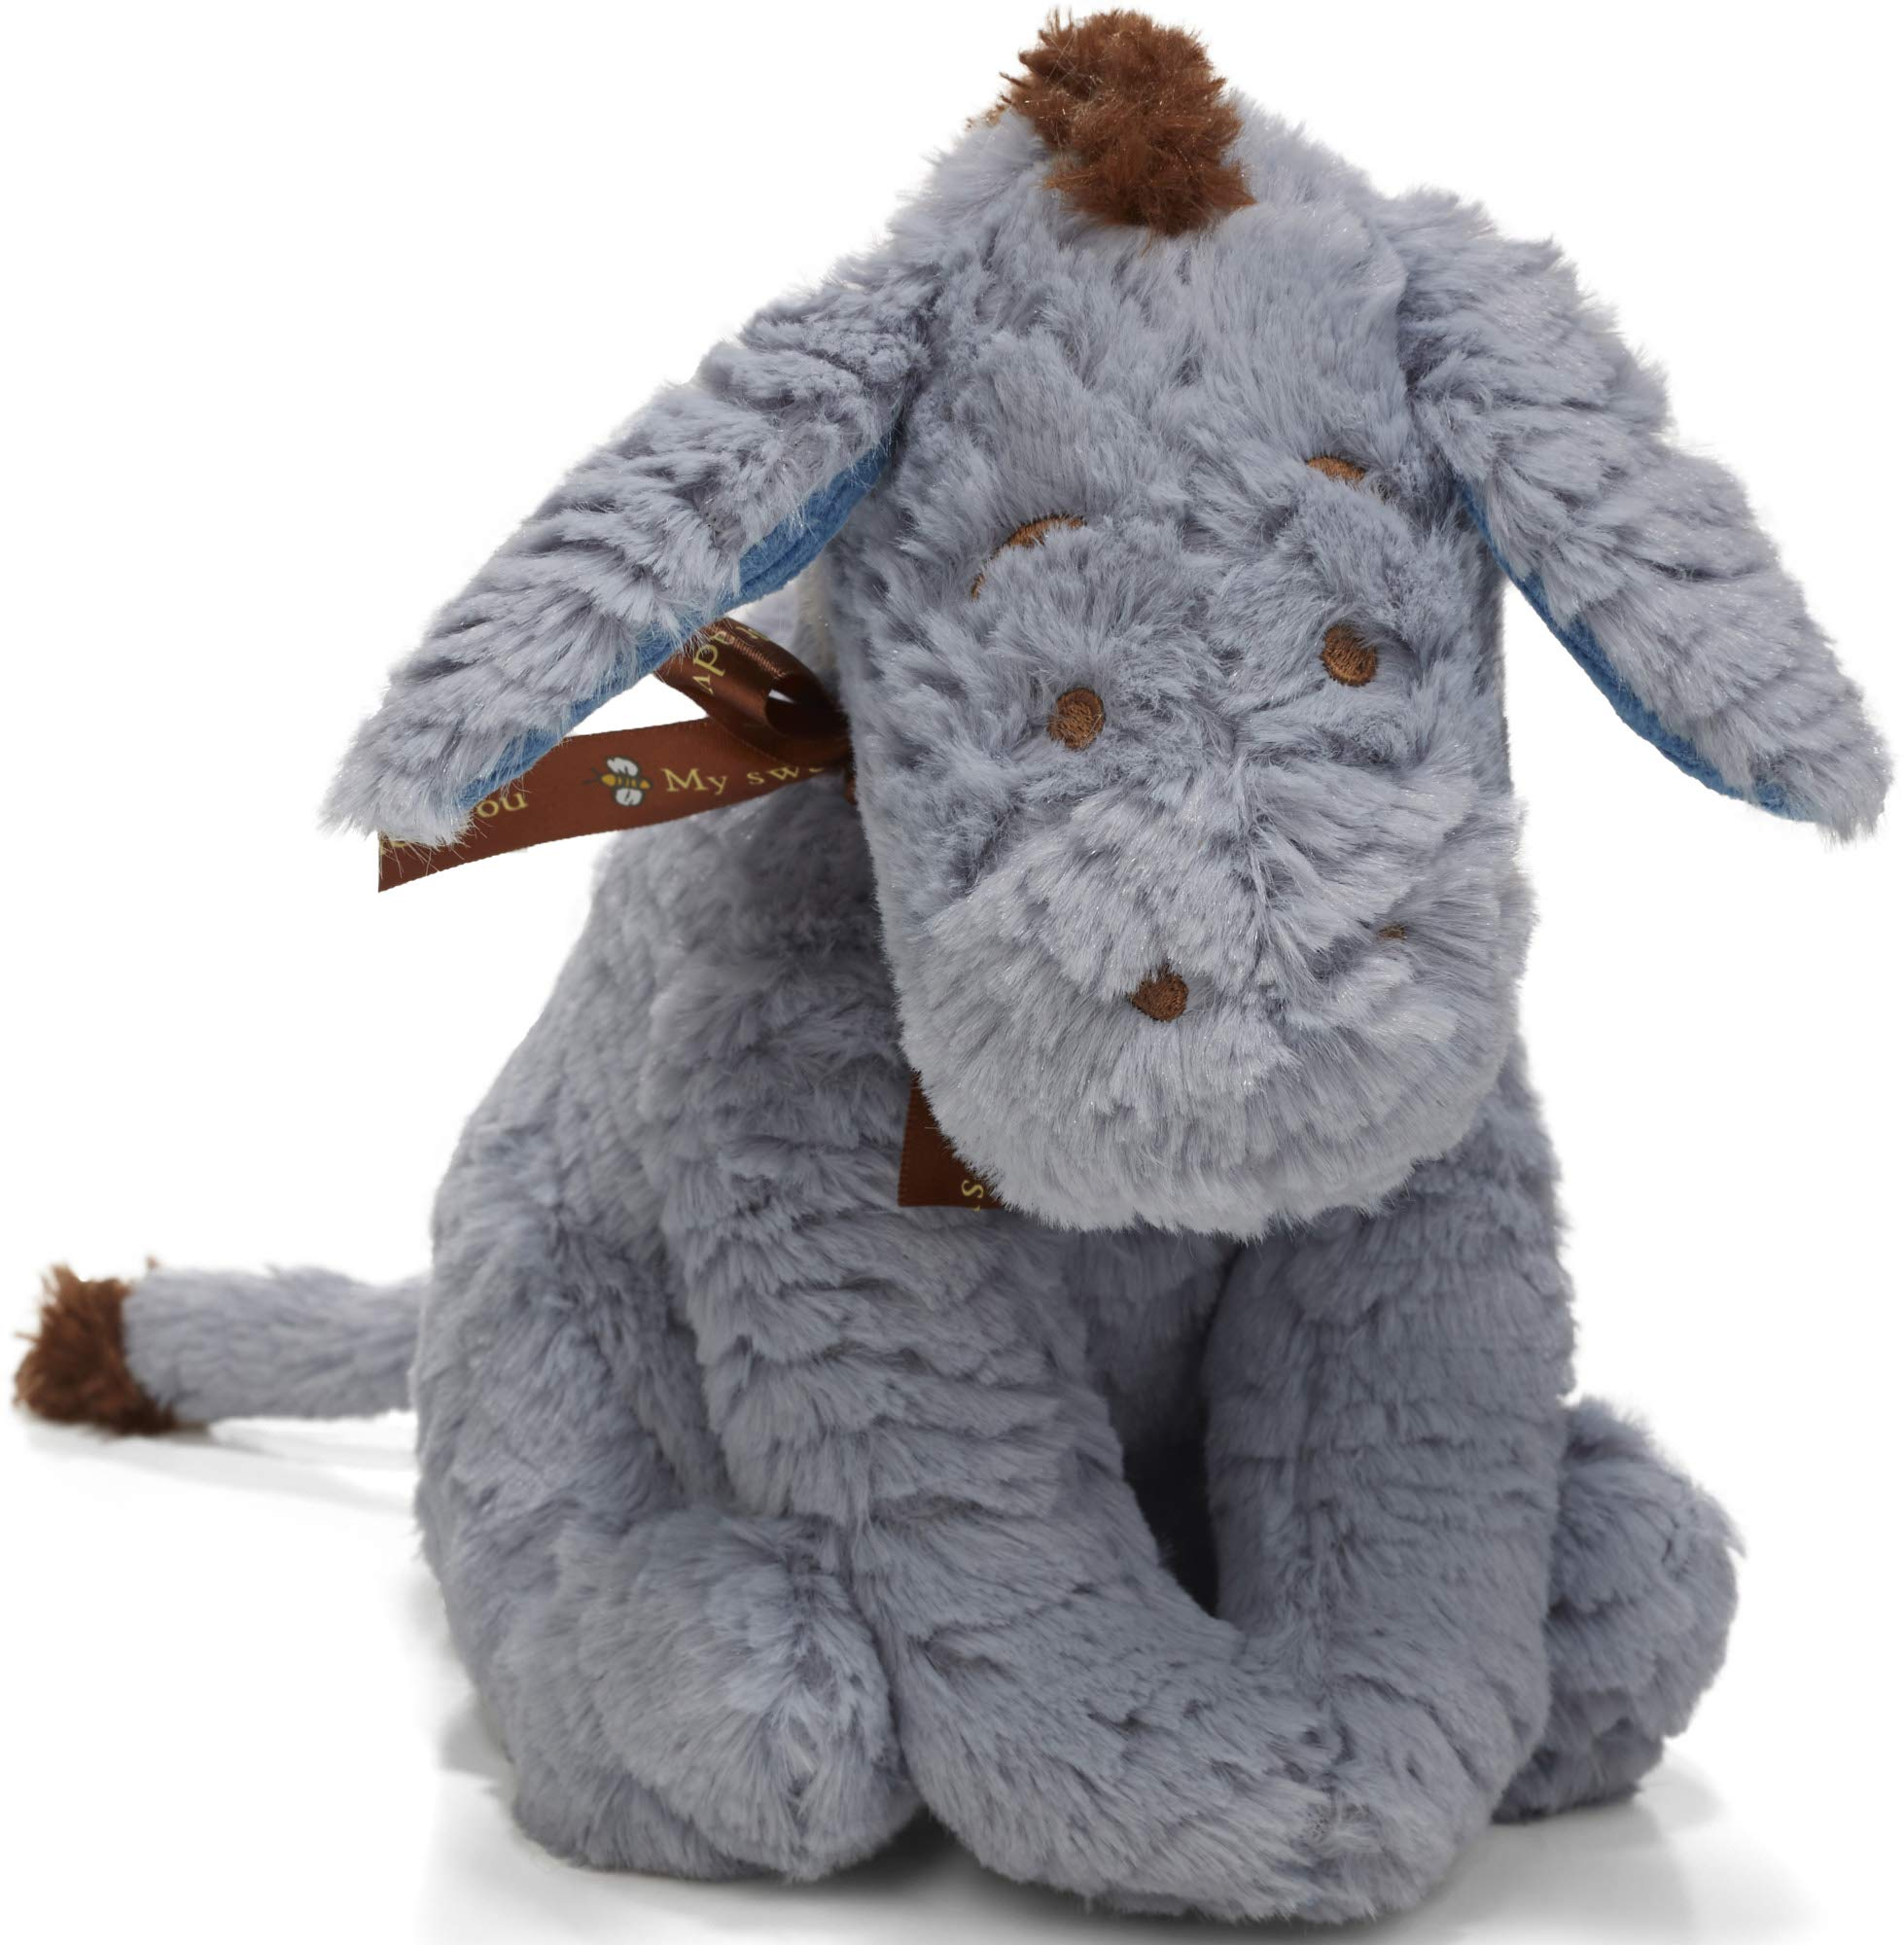 Disney Baby Classic Eeyore Stuffed Animal Plush Toy, 11.75 inches by KIDS PREFERRED